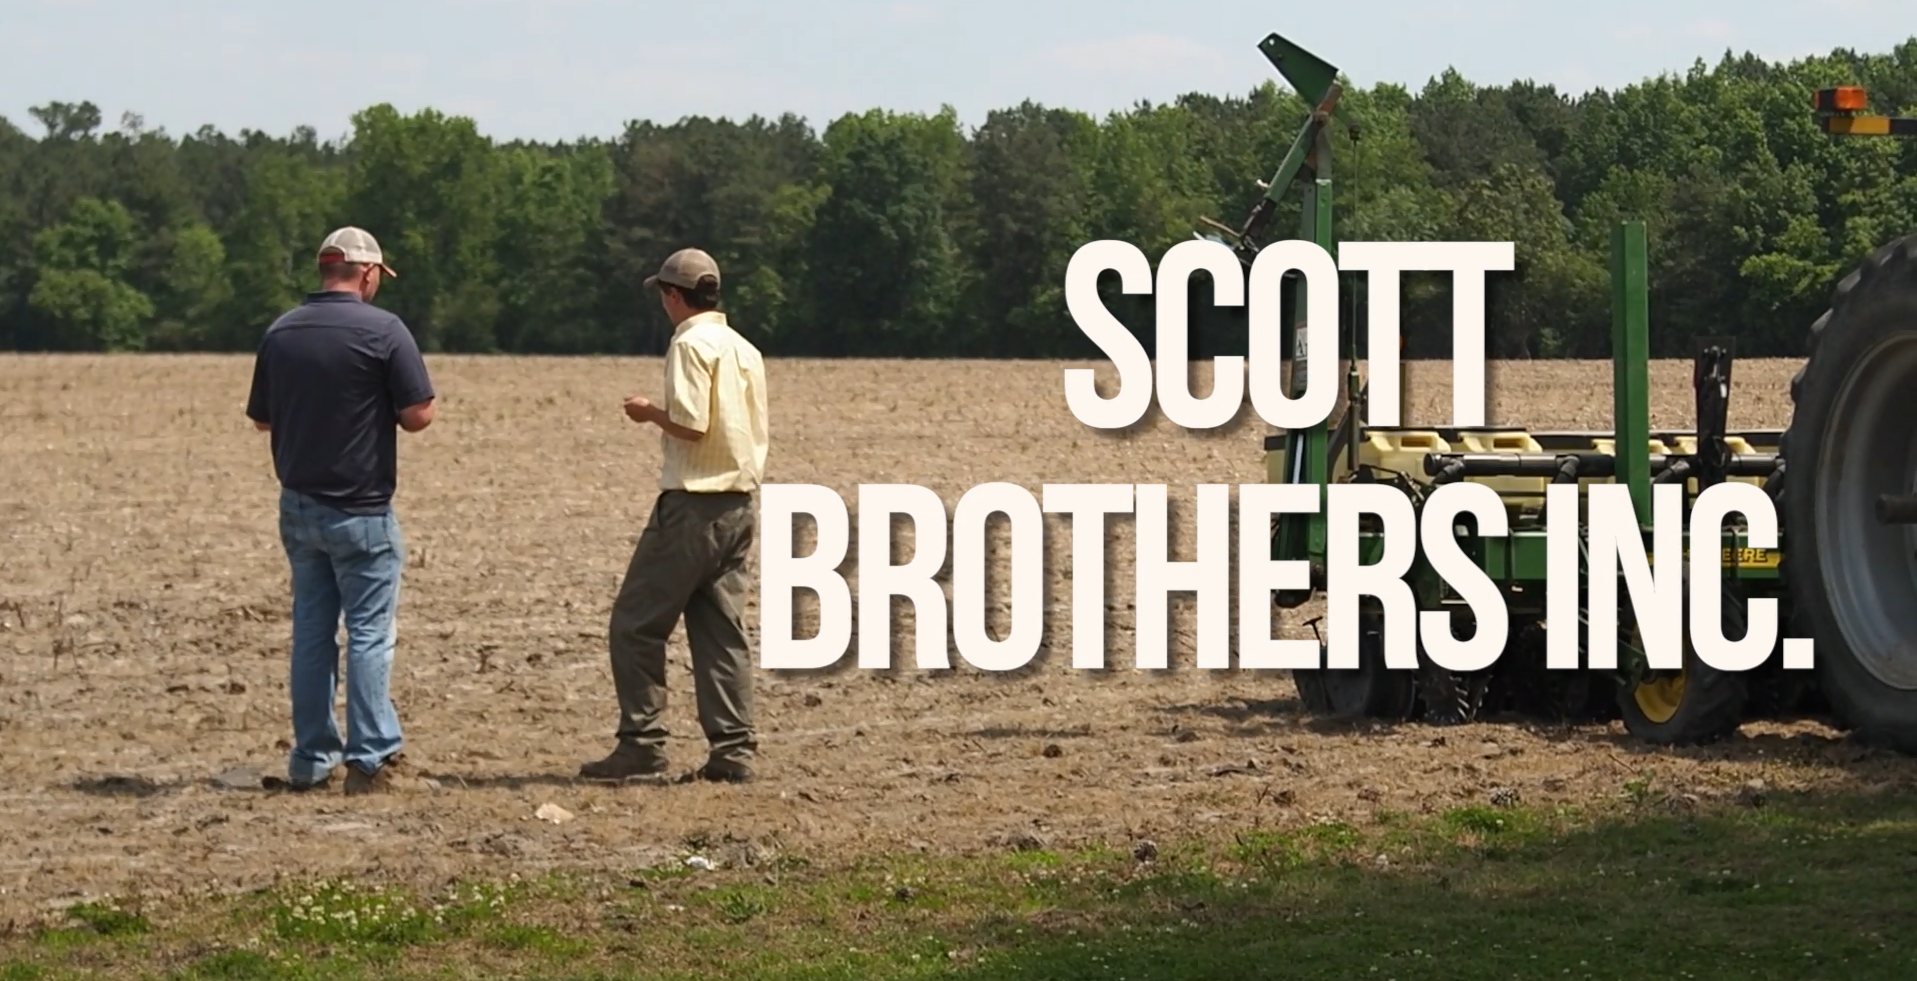 Scott Brothers Continuing the Family Tradition